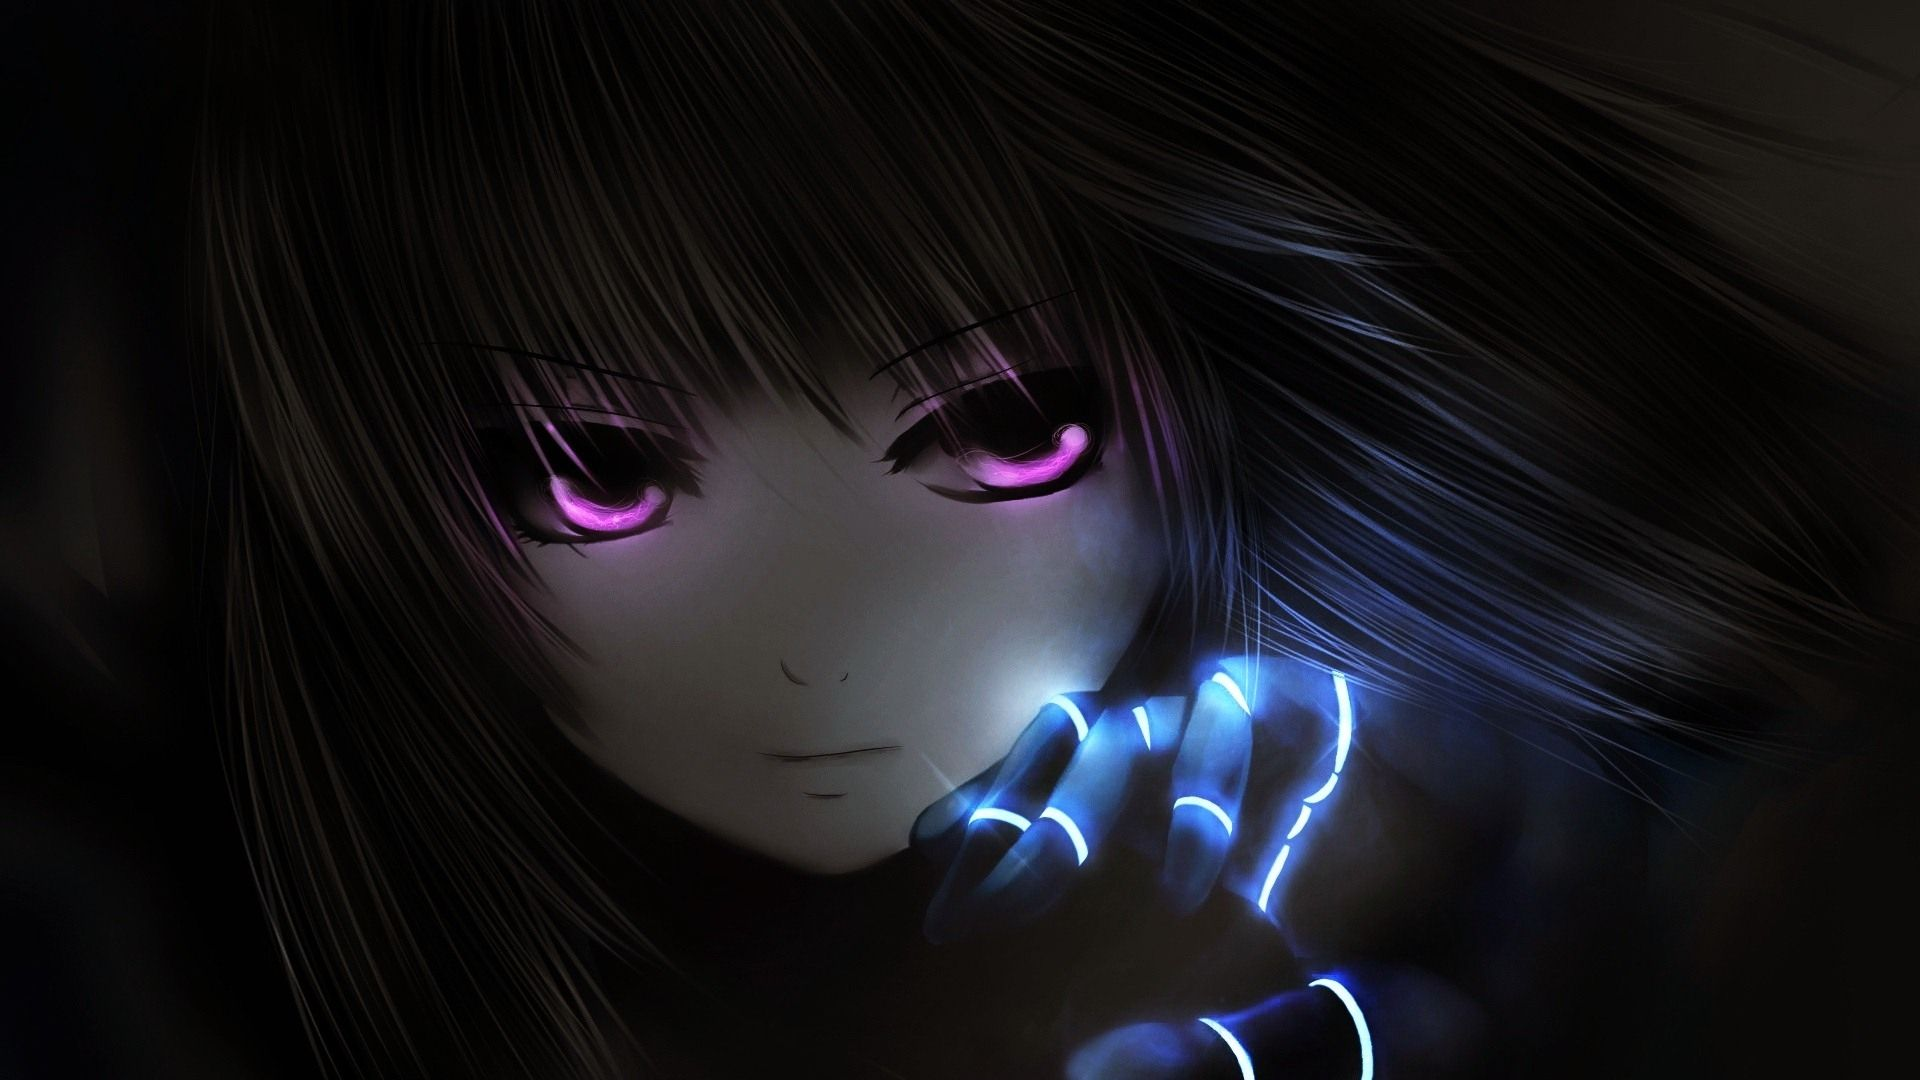 Black anime girl wallpapers top free black anime girl - Dark anime background ...